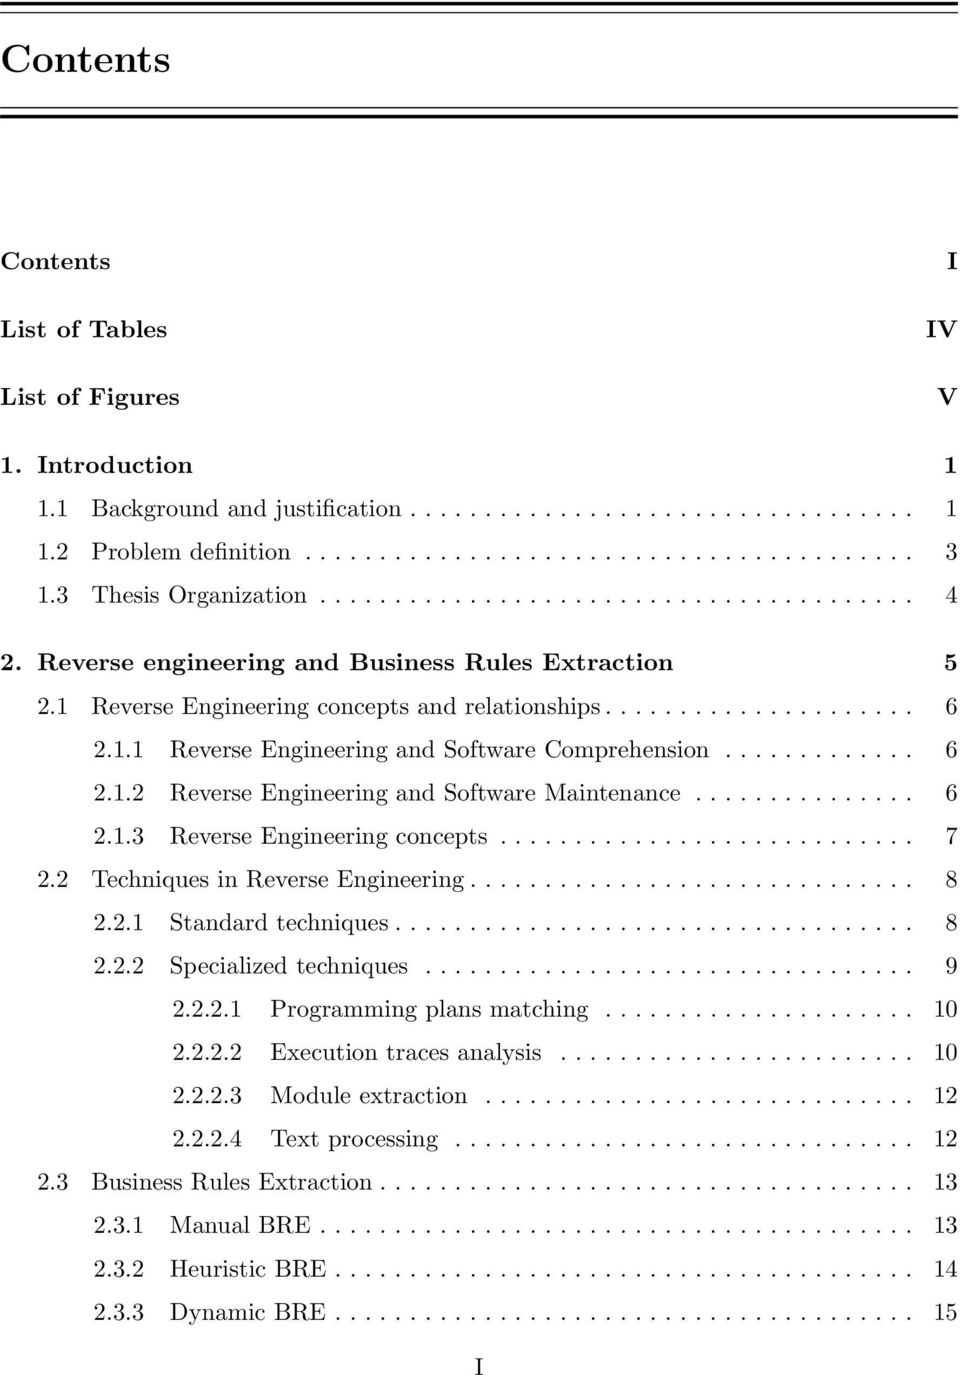 ............ 6 2.1.2 Reverse Engineering and Software Maintenance............... 6 2.1.3 Reverse Engineering concepts............................ 7 2.2 Techniques in Reverse Engineering.............................. 8 2.